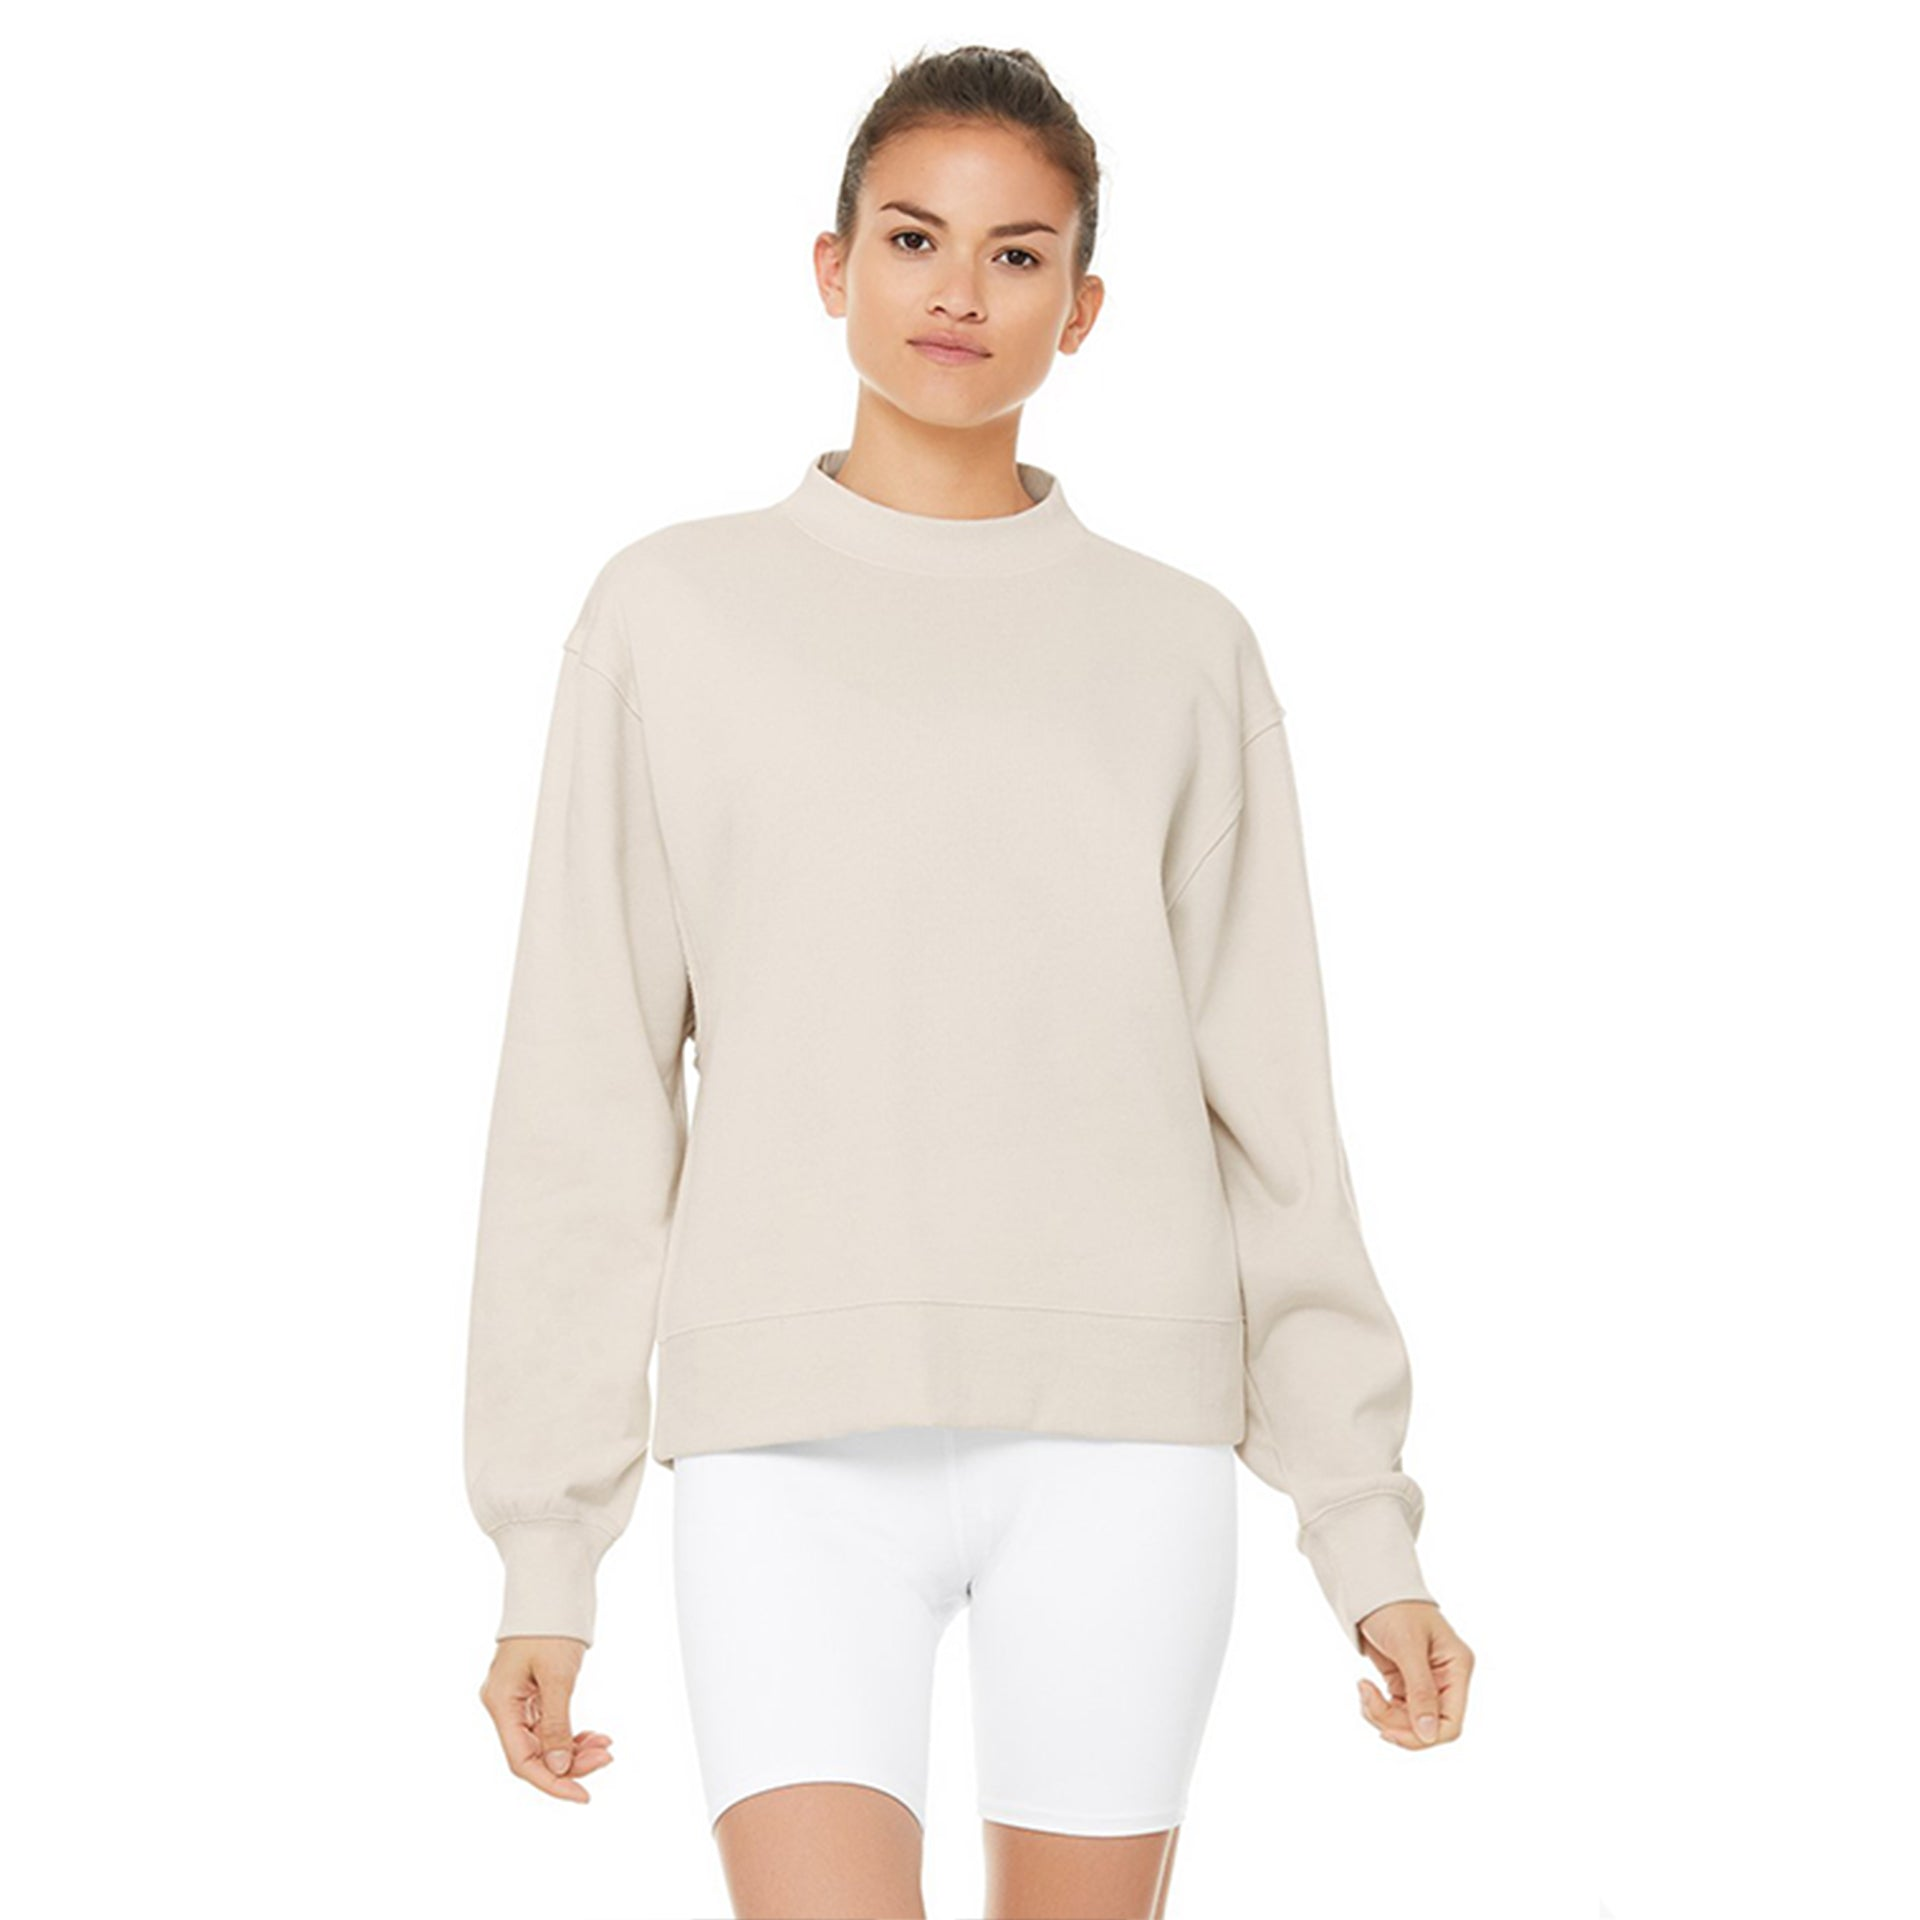 Alo Yoga Freestyle Sweatshirt in Bone